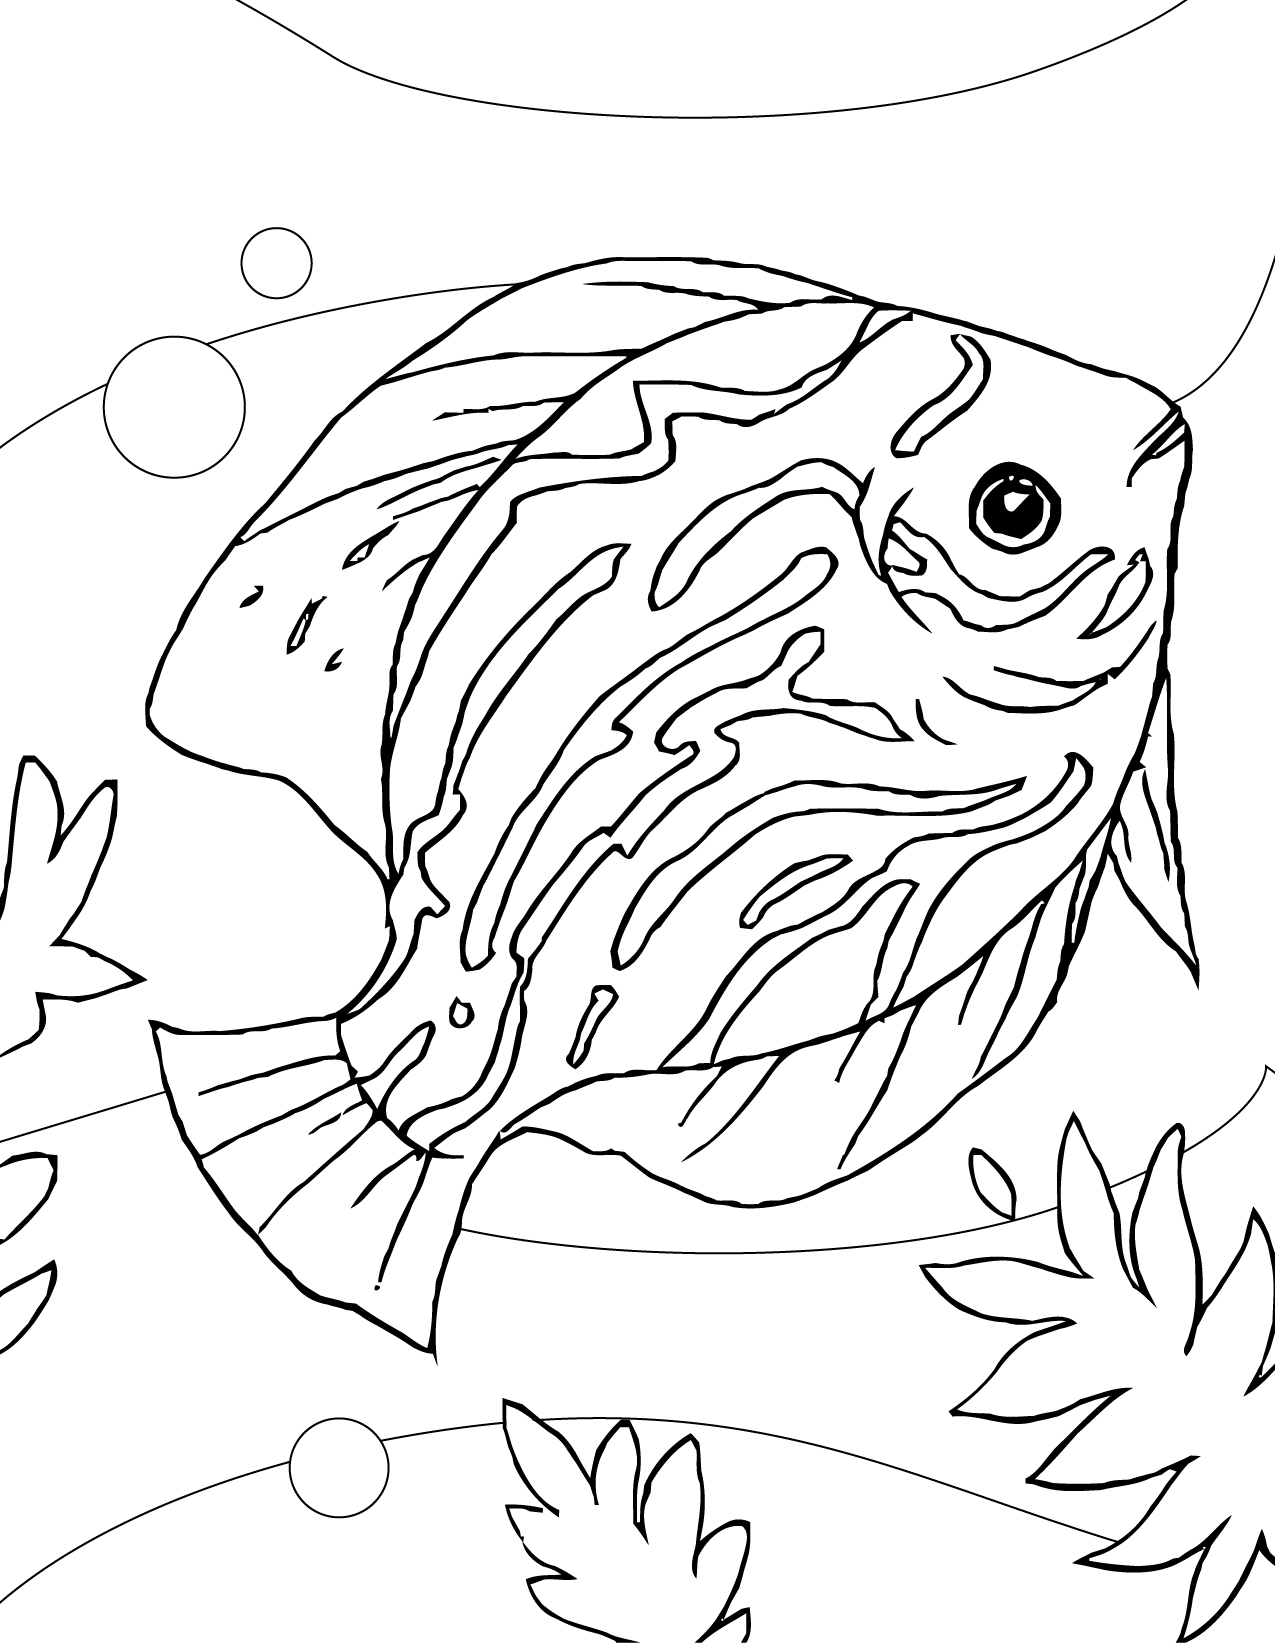 Aquarium Fish Coloring Pages At Getcolorings